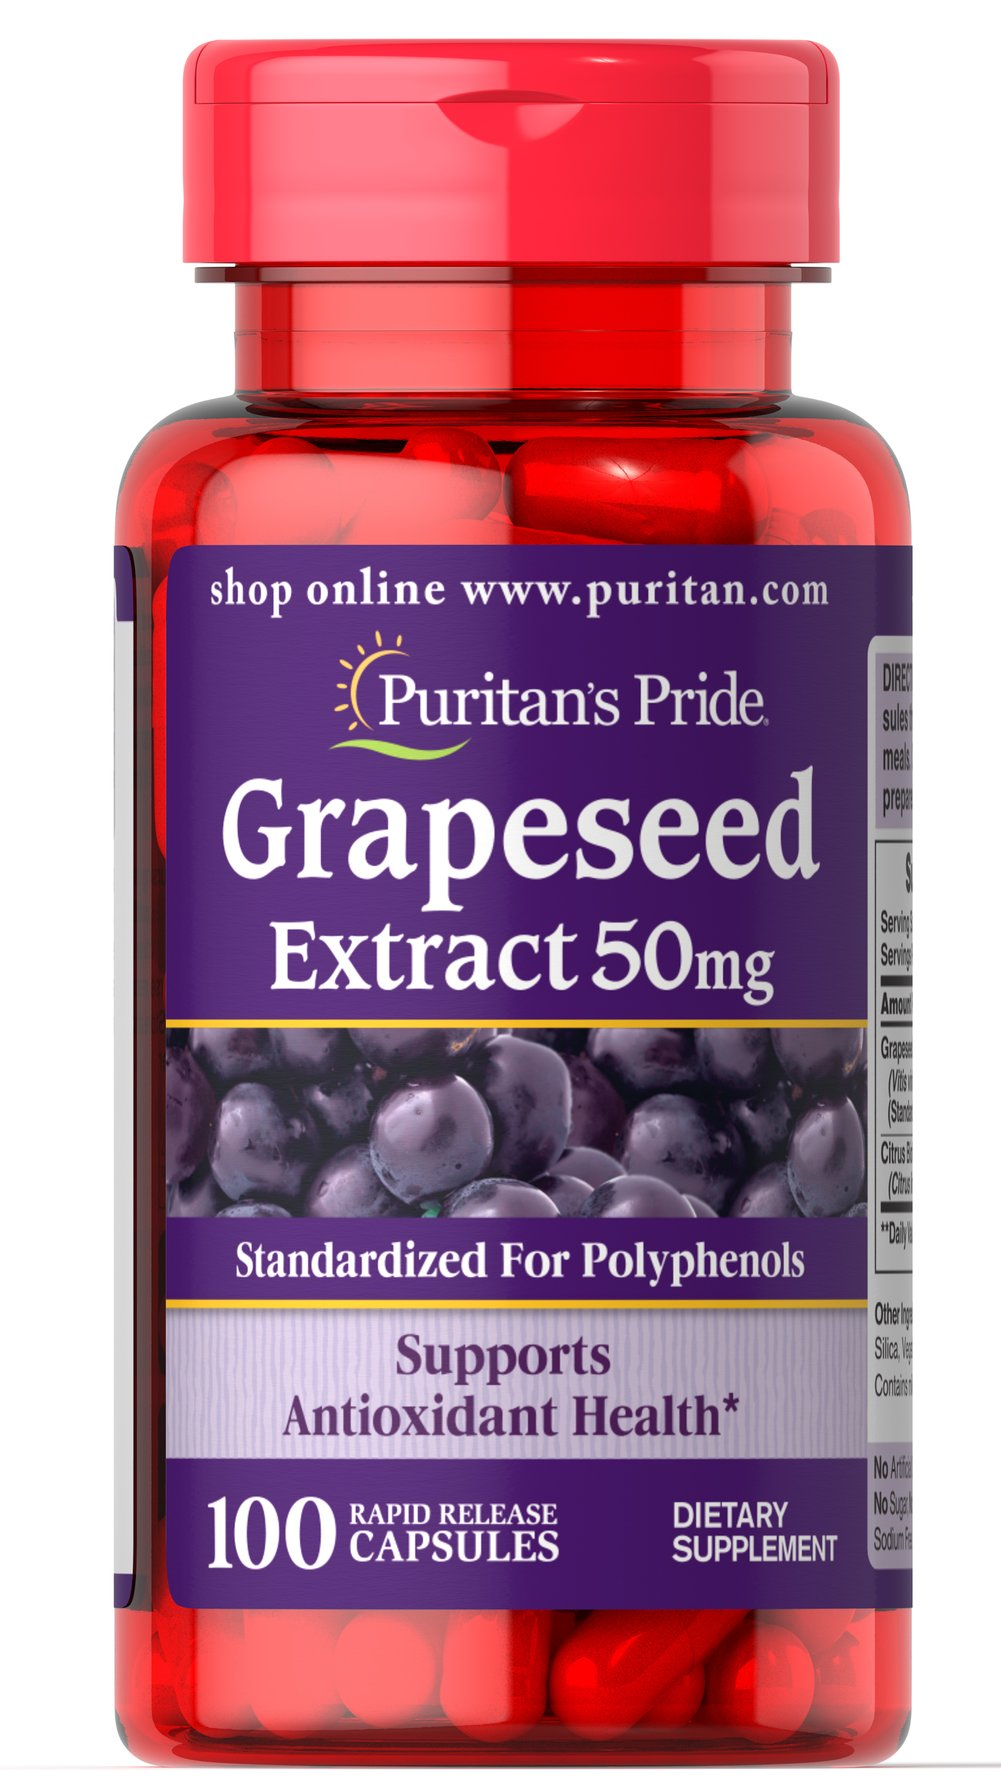 Grapeseed Extract 50 mg <p><strong>Grapeseed Extract</strong> helps maintain antioxidant health.** It contains oligomeric proanthocyanidins (OPCs), which are naturally occurring bioflavonoids. Free of yeast, wheat, sugar, preservatives, soy,  gluten, fish, artificial color, artificial flavor and sodium (less than 5 mg per serving). Standardized to contain 50% Polyphenols. Adults can take one capsule one or two times daily.</p> 100 Capsules 50 mg $11.29